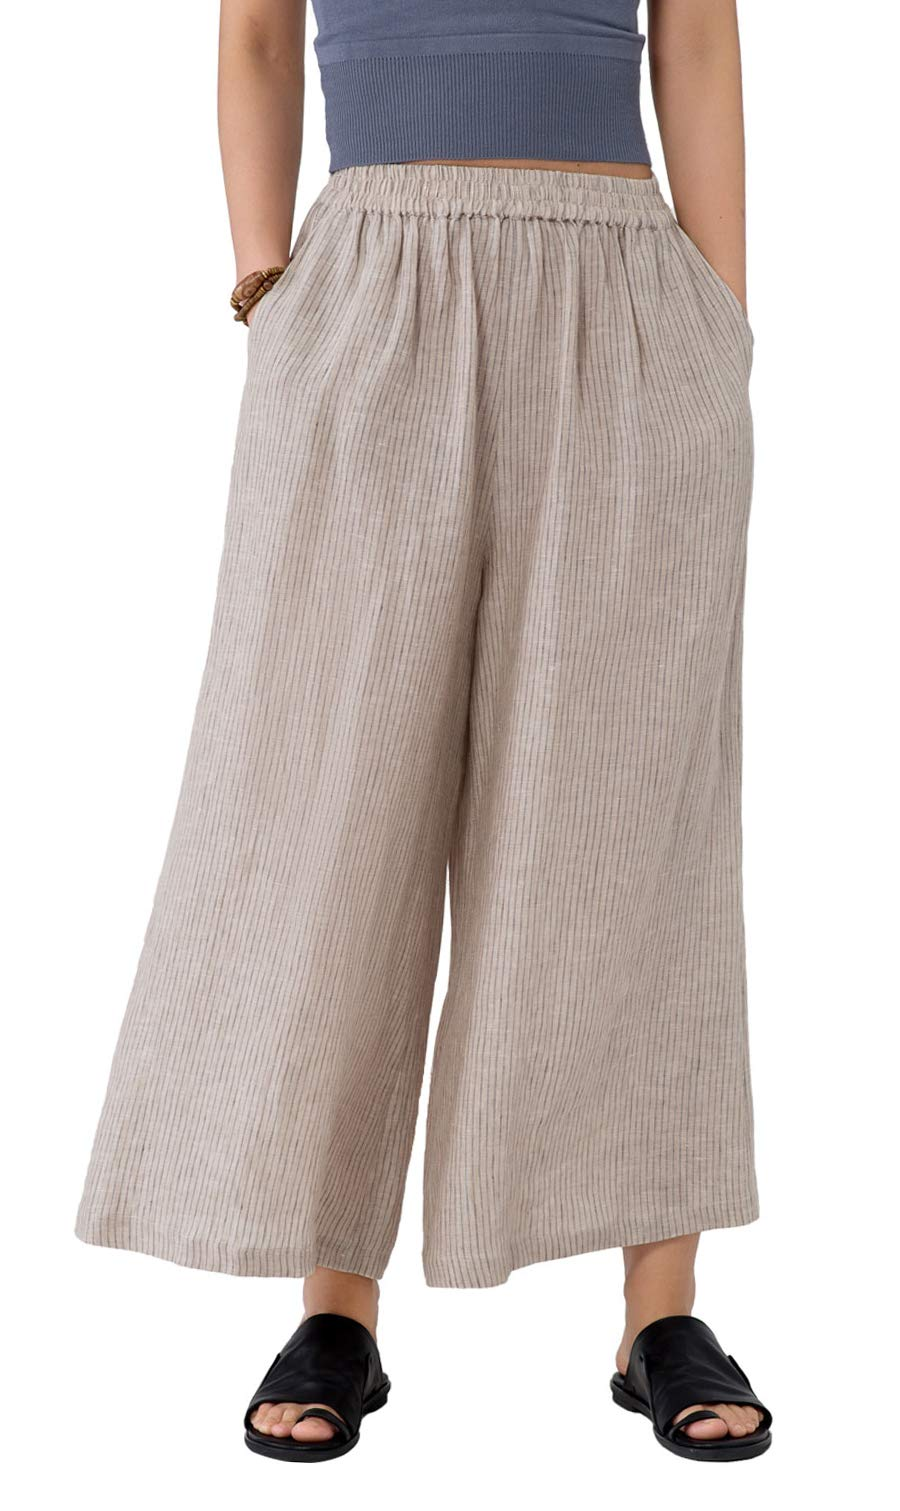 Les umes Ladies Womens Casual Loose Linen Elastic Waist Relaxed Trousers Cropped Wide Leg Culottes Pants US 6-20